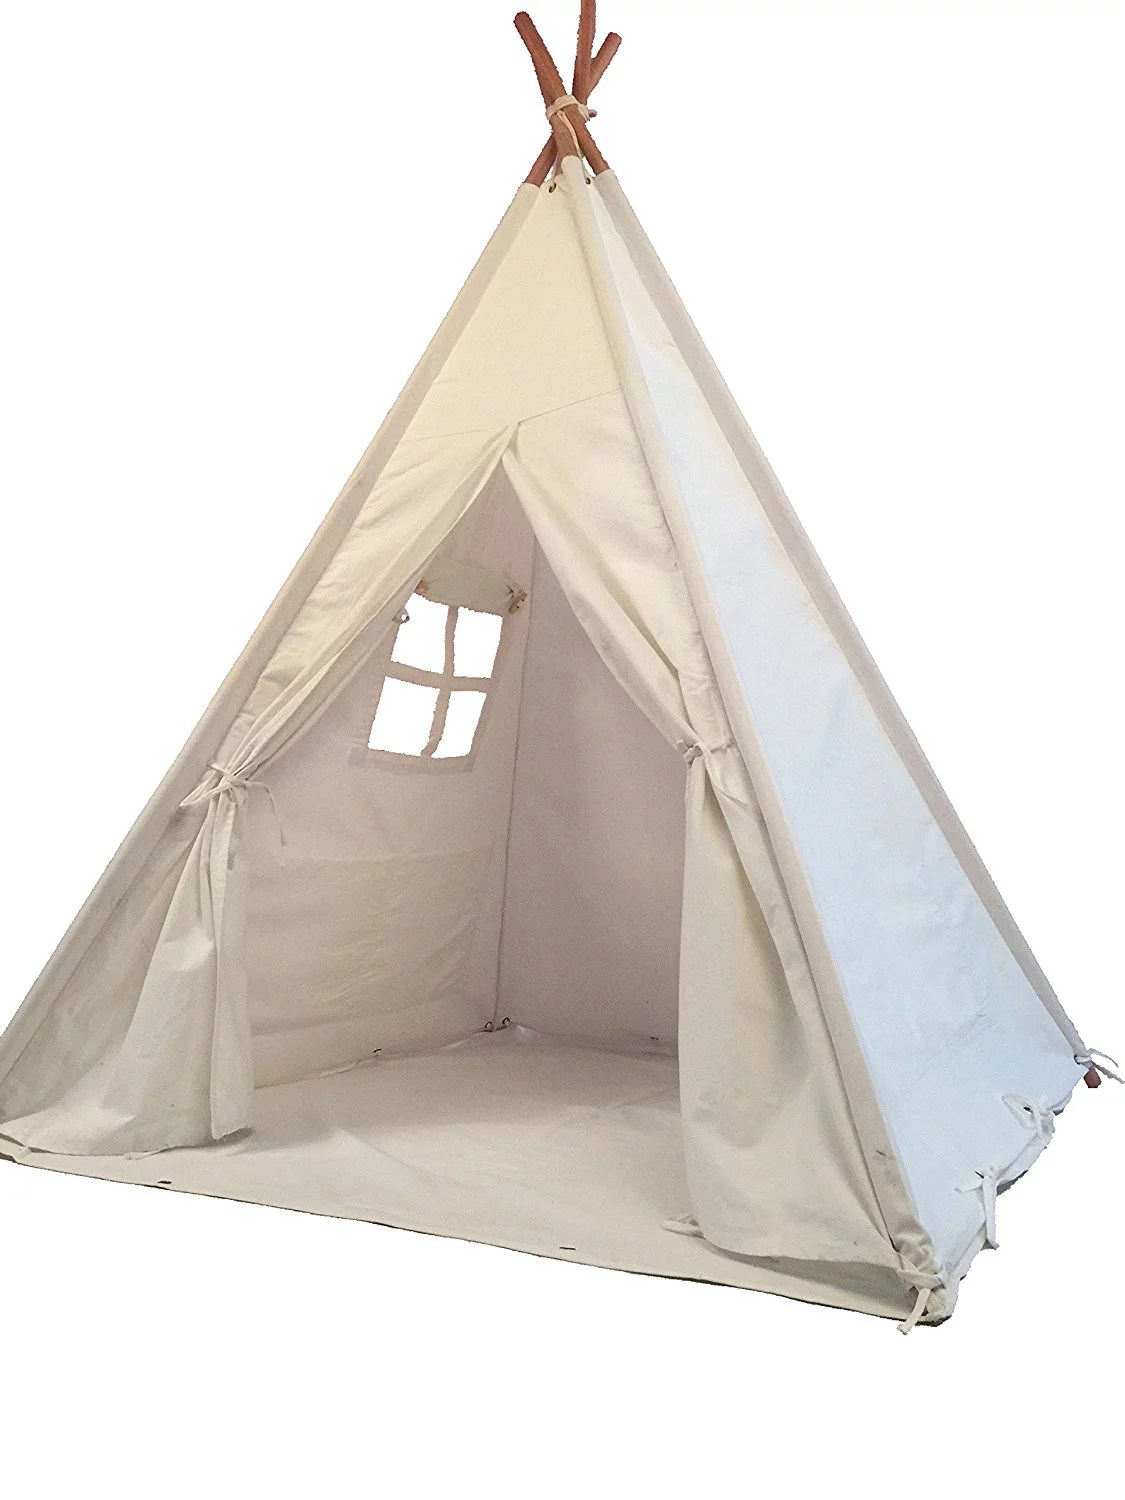 Teepee Kids Pericross Kids Teepee Tent Indian Play Tent Children S Playhouse For Outdoor And Indoor Play